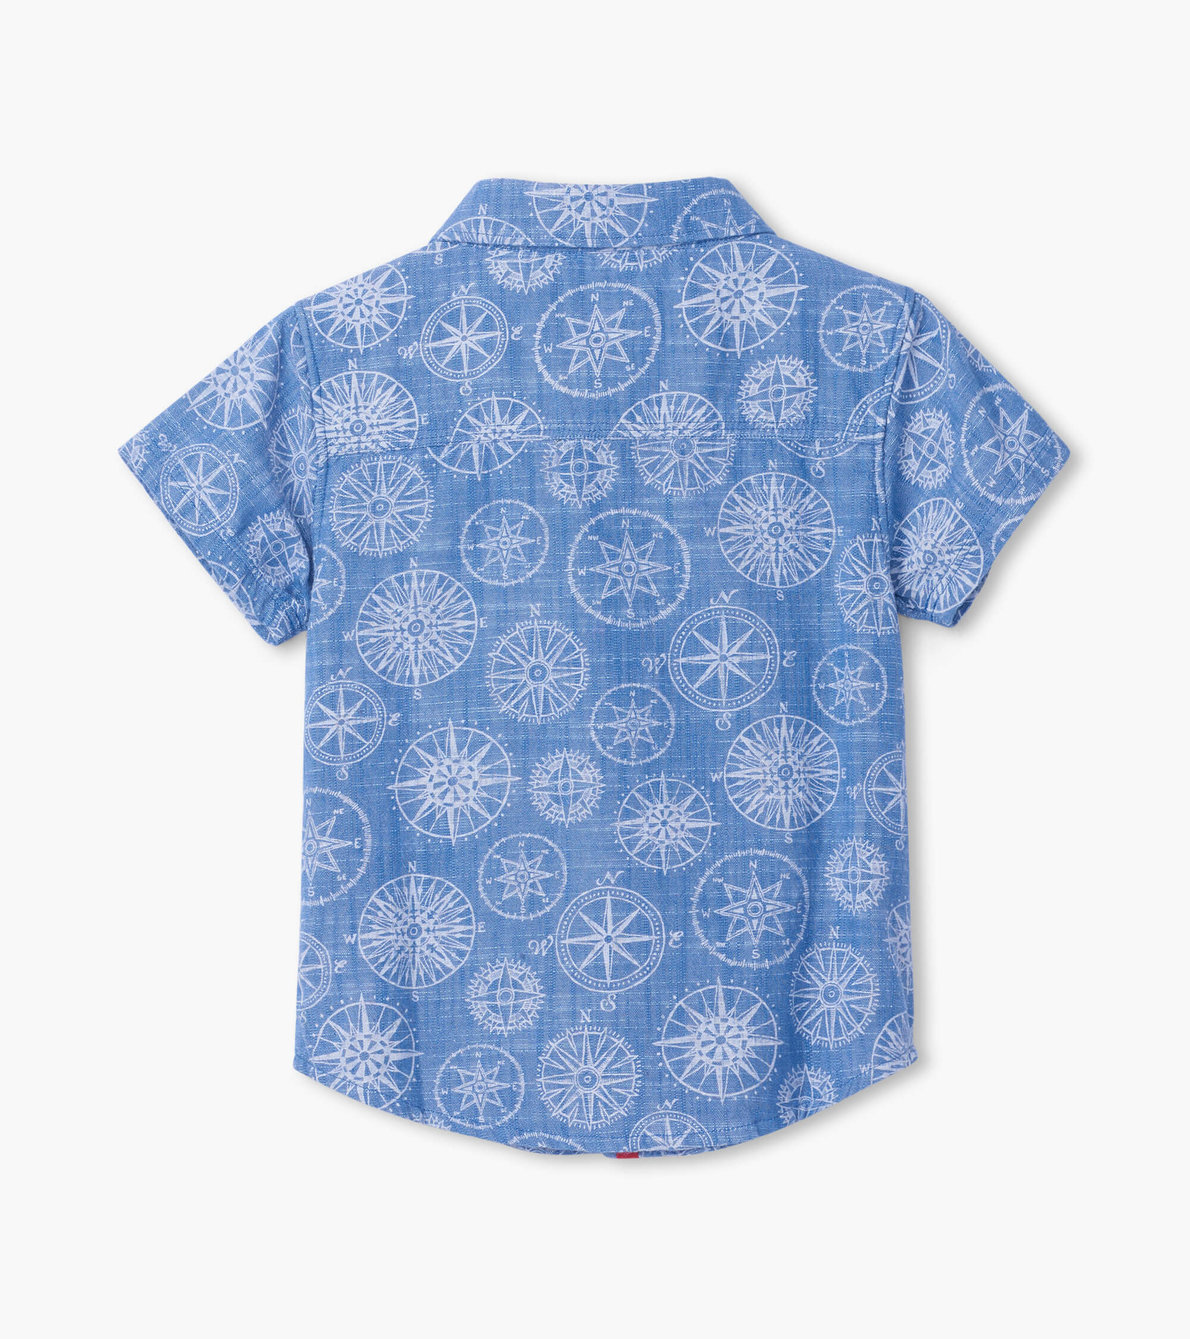 View larger image of Nautical Compass Baby Button Down Shirt